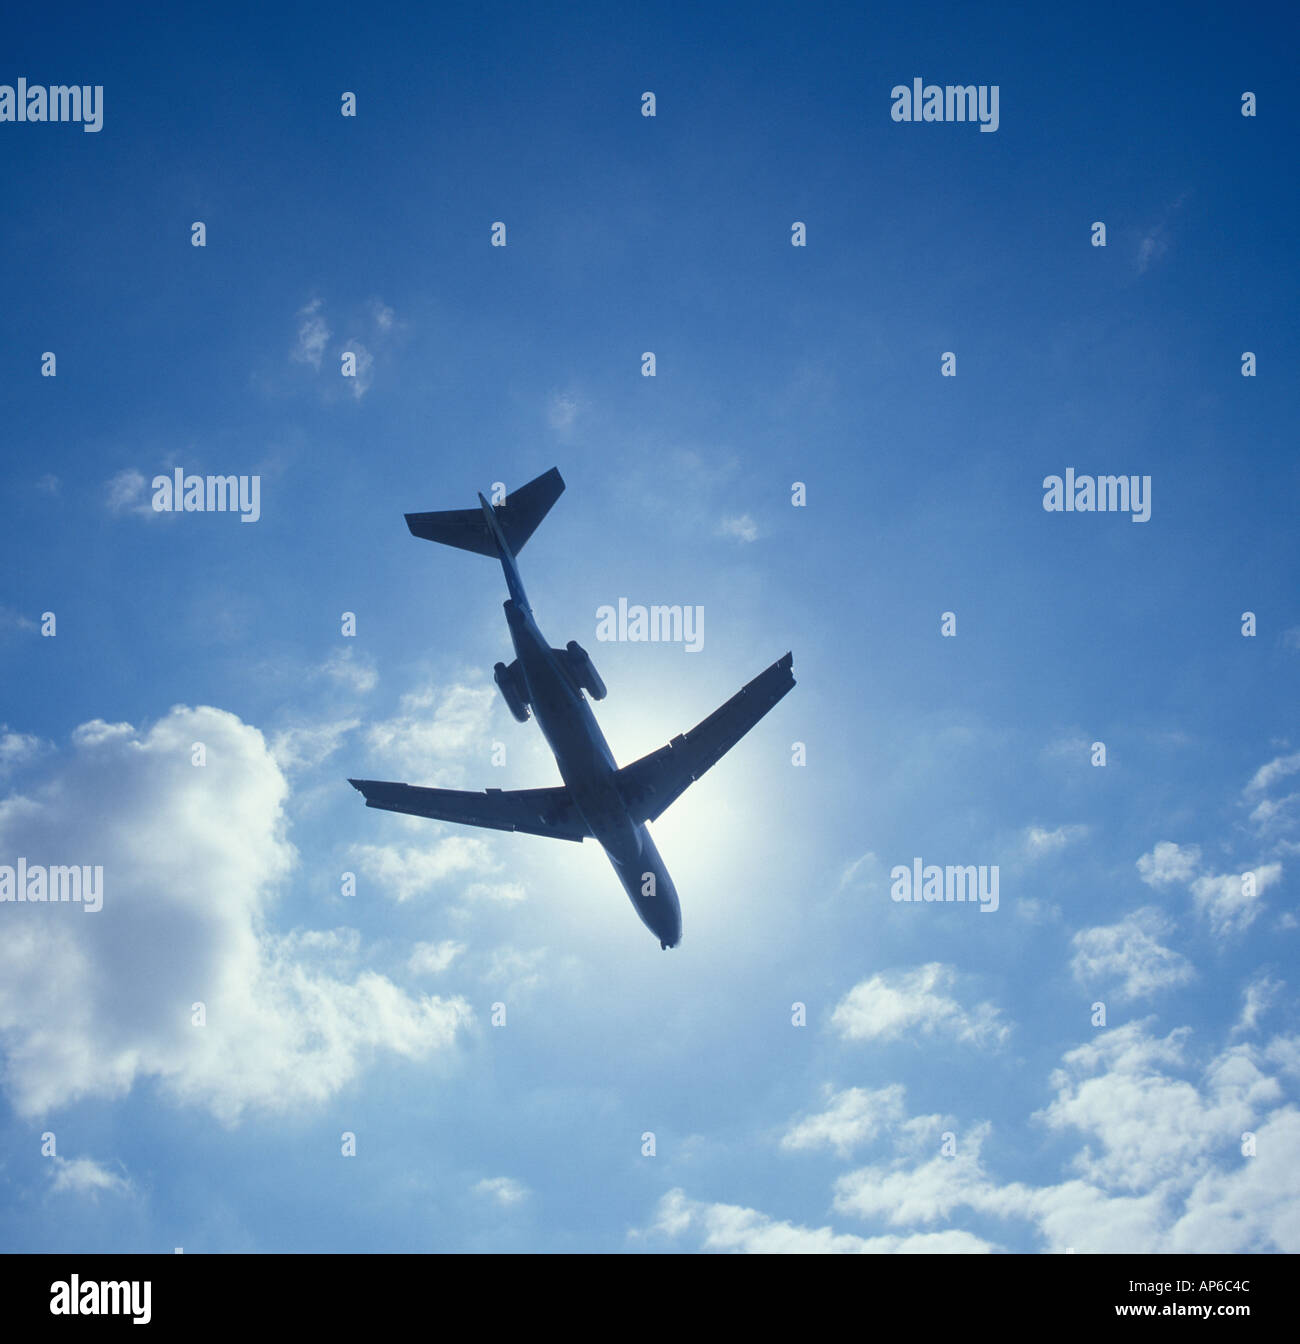 commercial jet airplane in flight - Stock Image